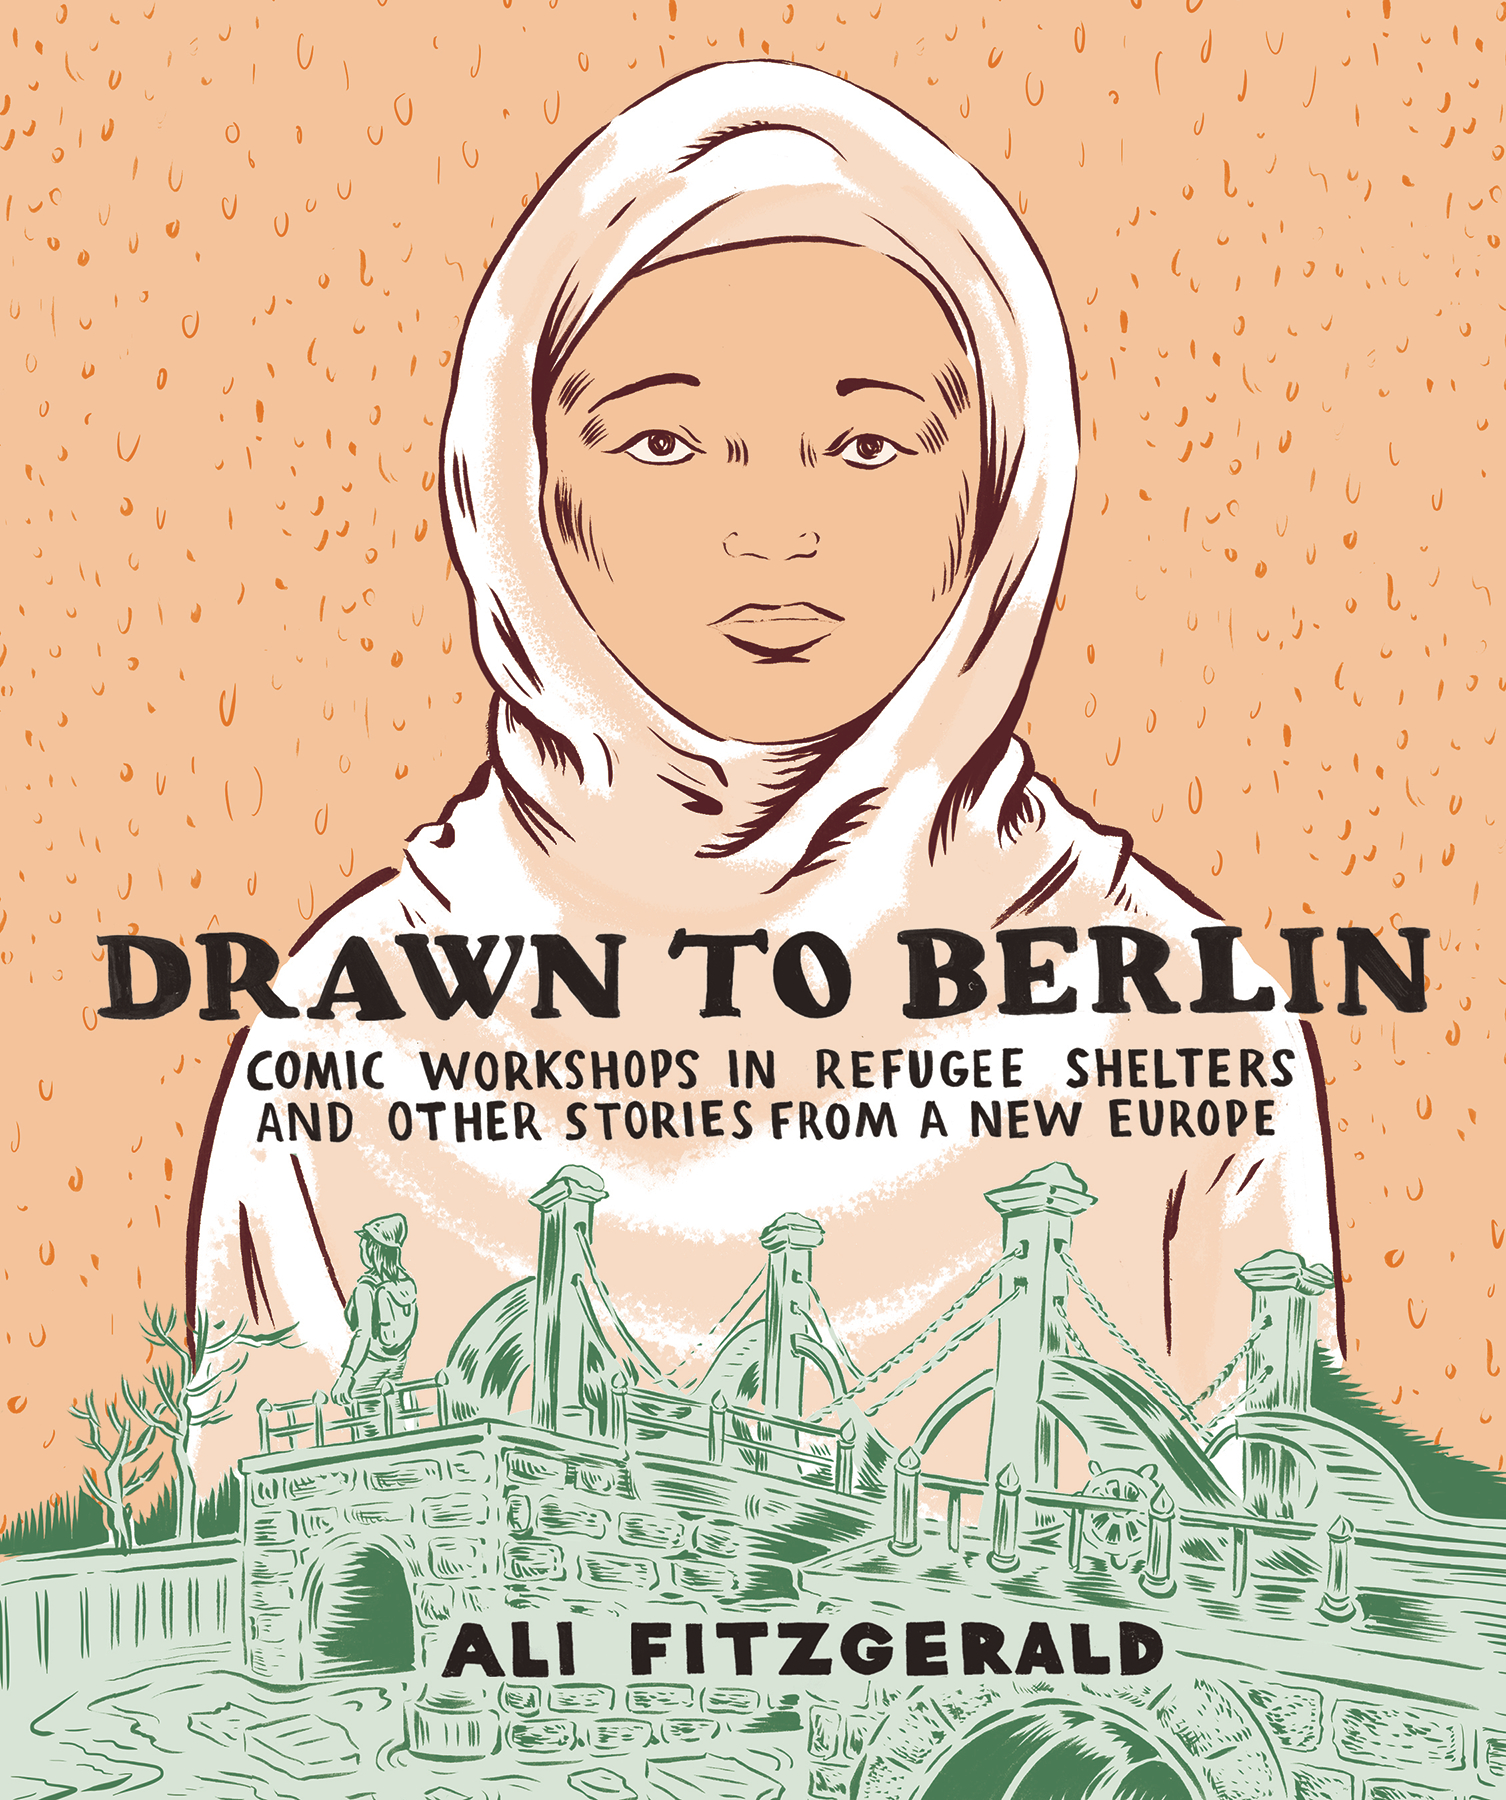 DRAWN TO BERLIN HC COMIC REFUGEE STORIES NEW EUROPE (Ali FITZGERALD) (MR)